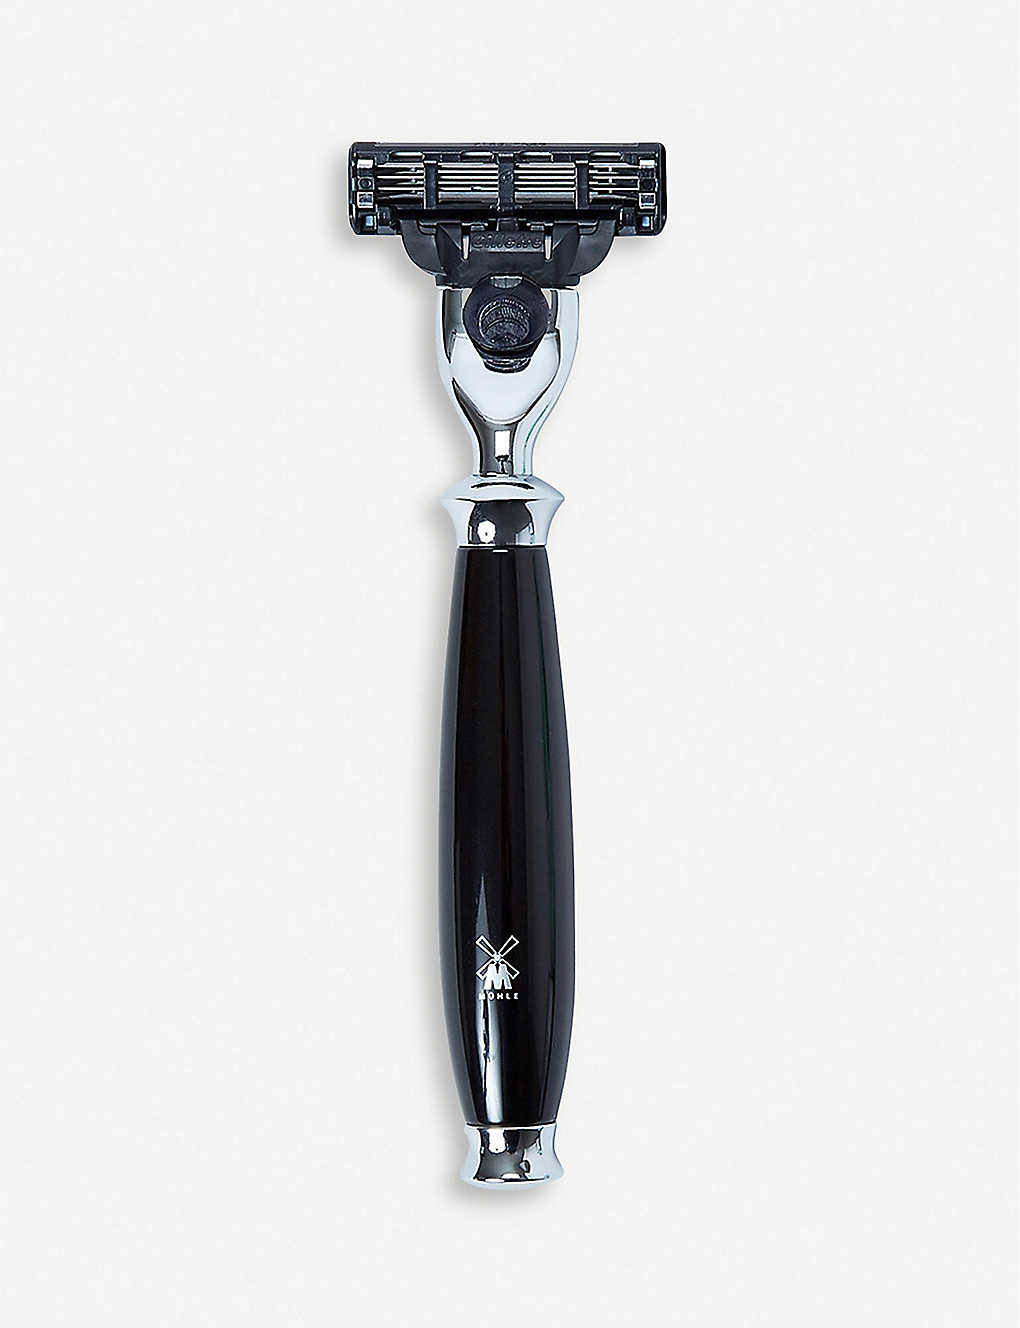 THE CONRAN SHOP: MÜHLE Purist Fusion Razor